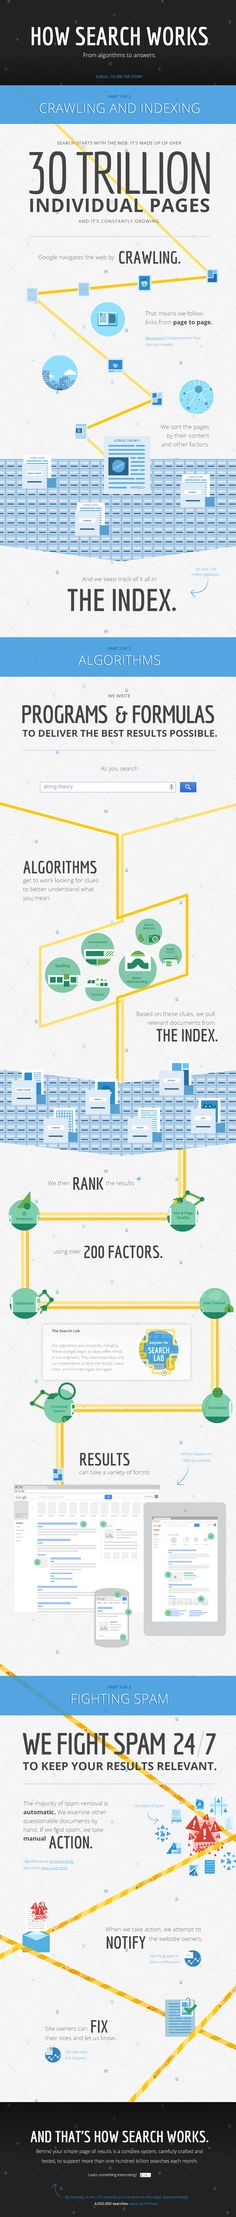 How Google search works #infographic